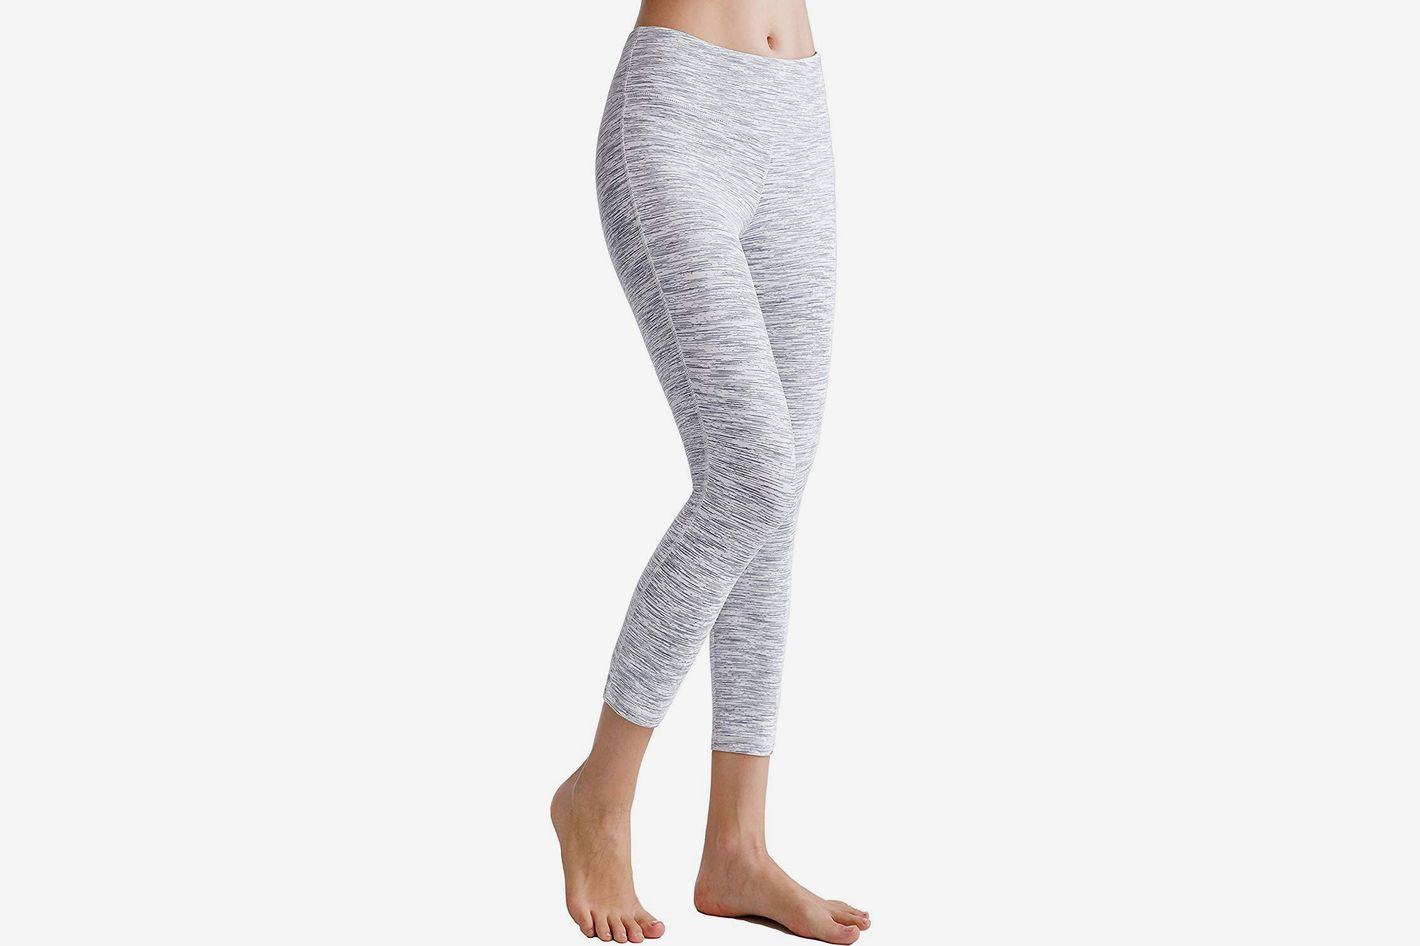 f32b918a7265 The 20 Best Yoga Pants for Women 2019